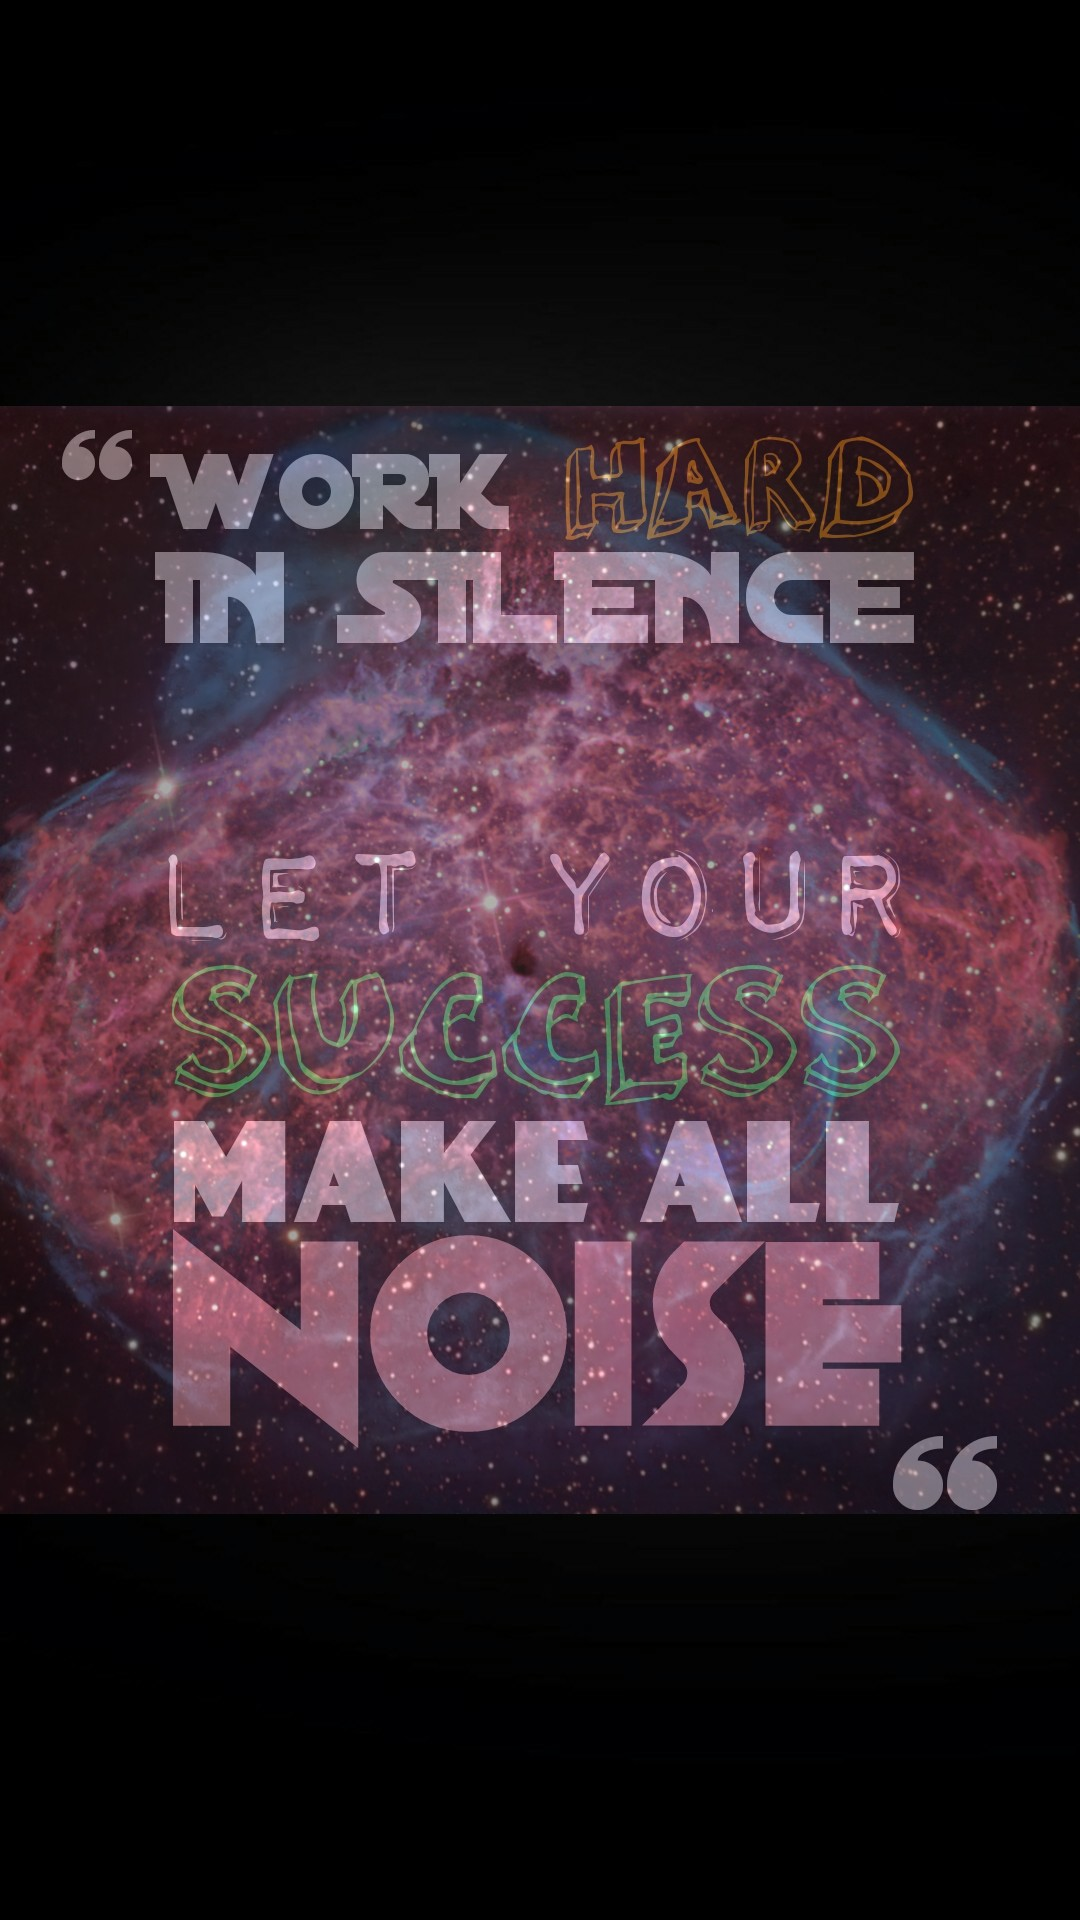 Work hard in silence.  Let your success make all noise